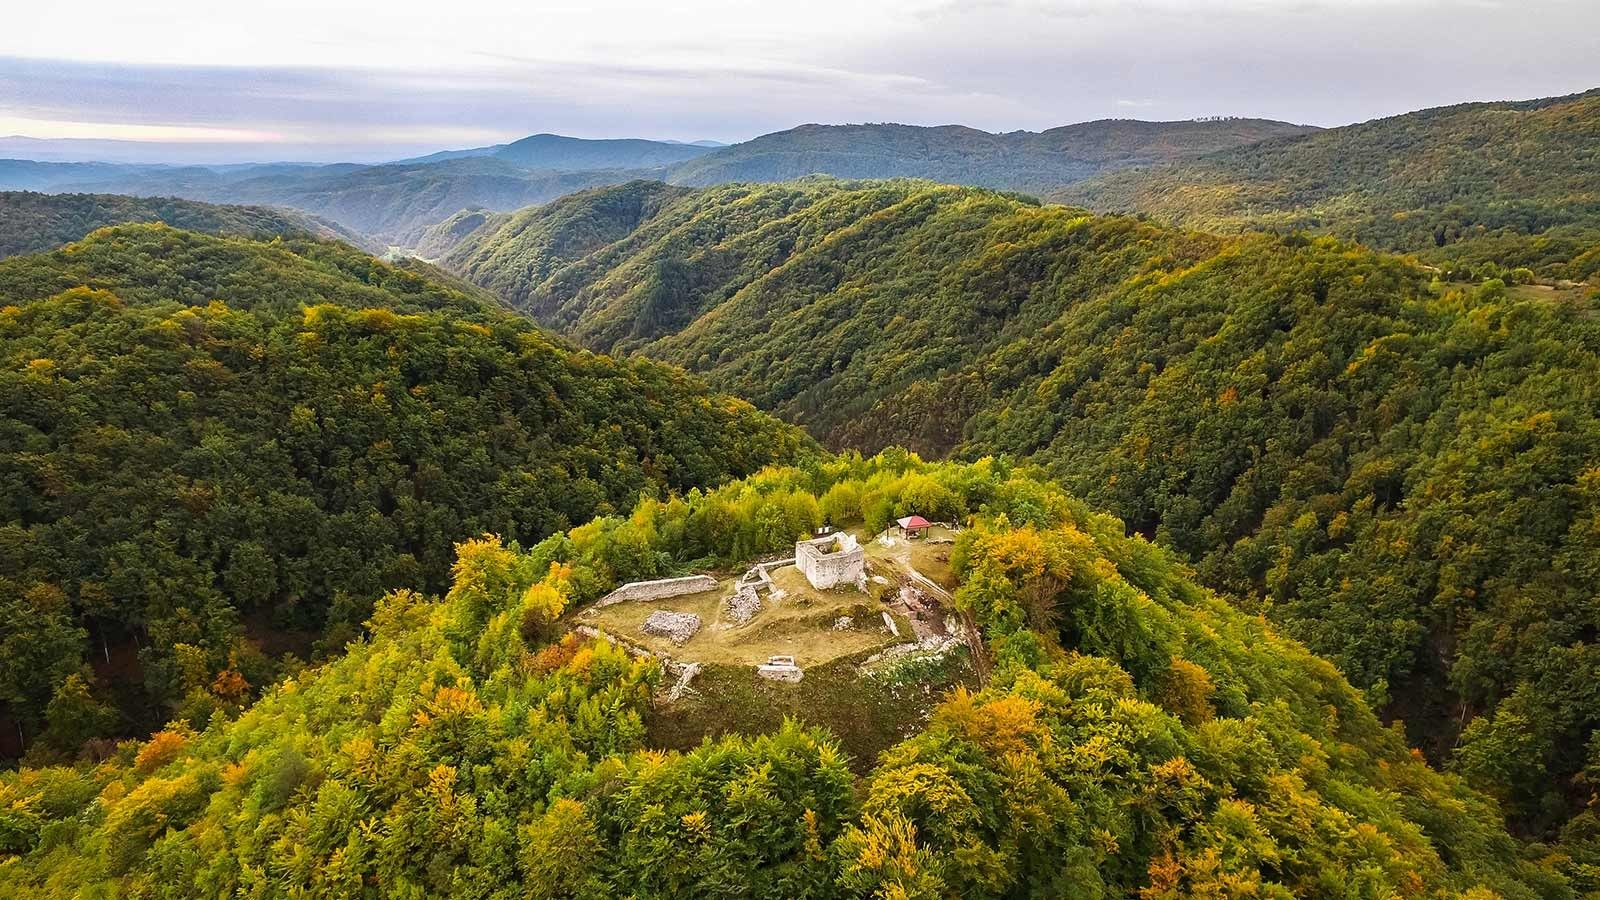 Nature Park Zumberak West Of Zagreb Is Zumberak Nature Park And Samobor Highlands Their Distinctive Nature Stems From The Number O Nature Picturesque Samobor